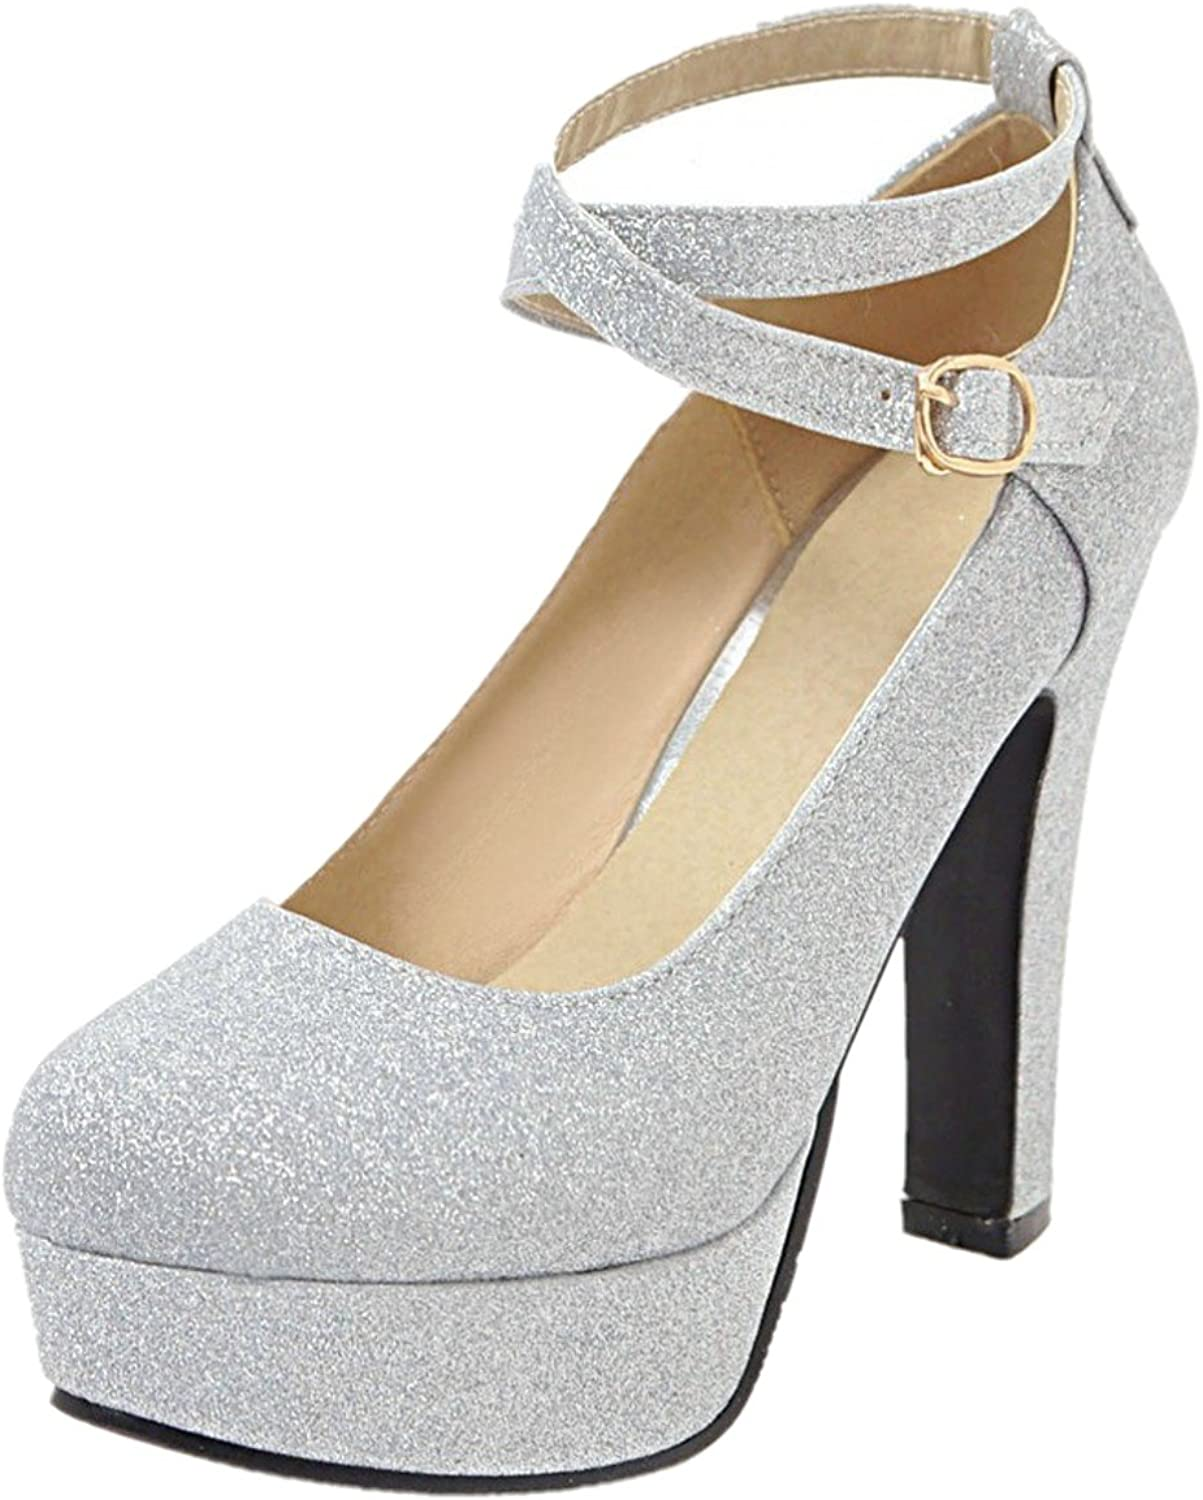 Rongzhi Womens Pumps Thick High Heels Ankle Strap Buckle Platform Round Toe Dress Party Heeled shoes